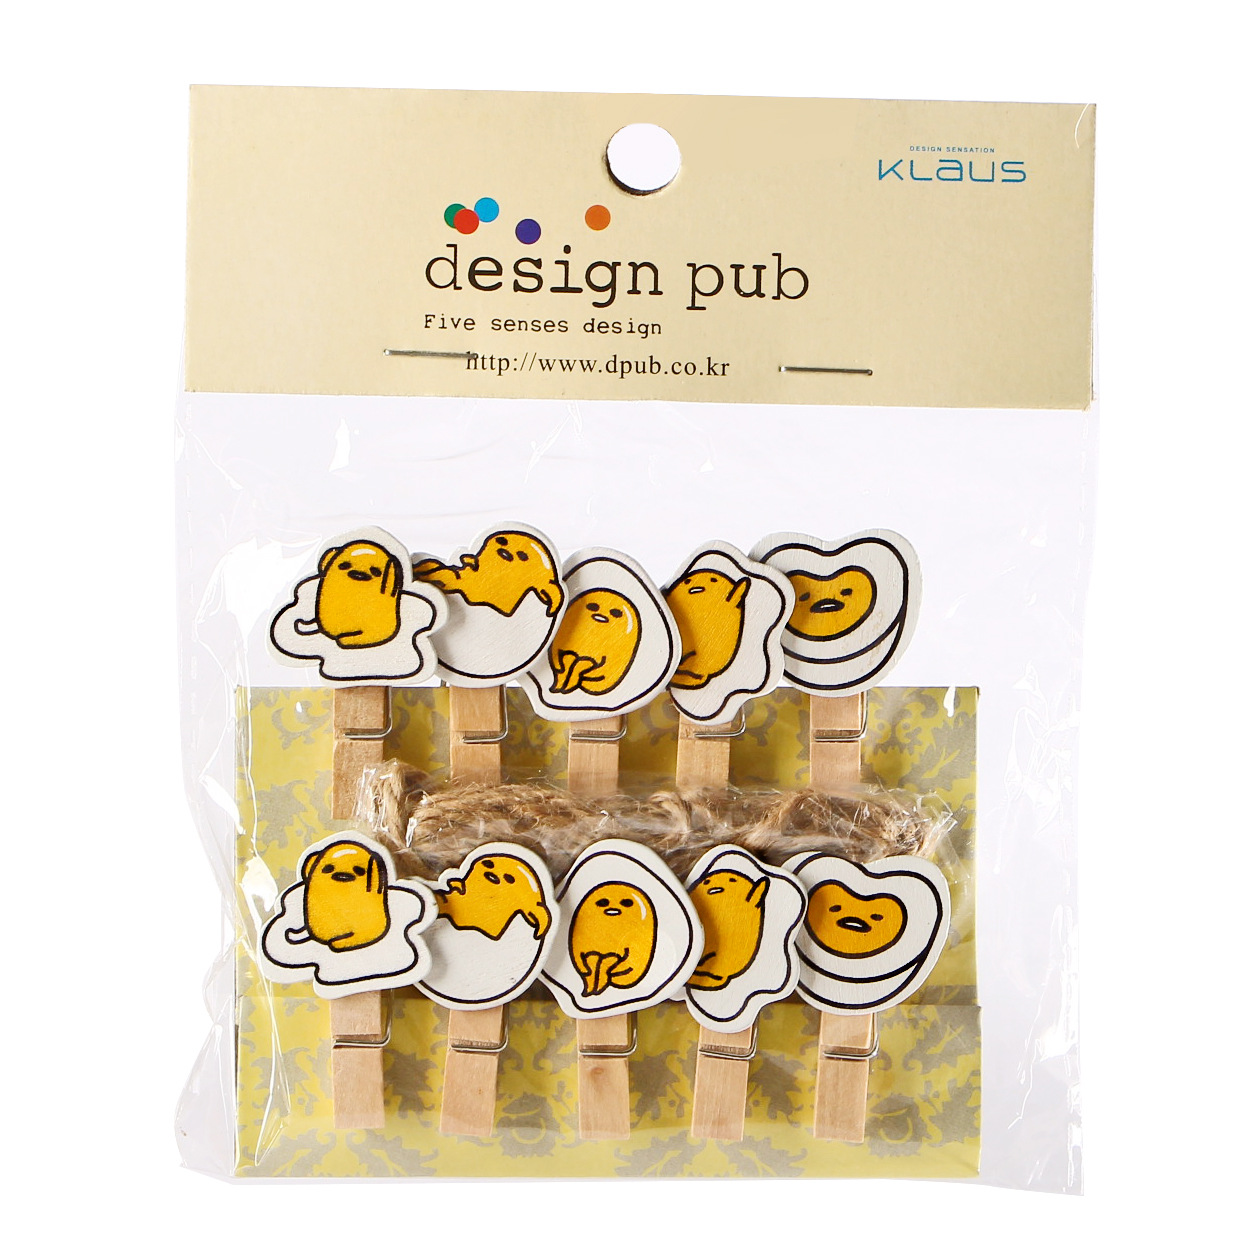 10 Pcs/pack Cute Novelty Gudetama Lazy Egg Hemp Rope Egg Style Wooden Clip Photo Paper Craft Diy Clips With Hemp Rope Office Binding Supplies